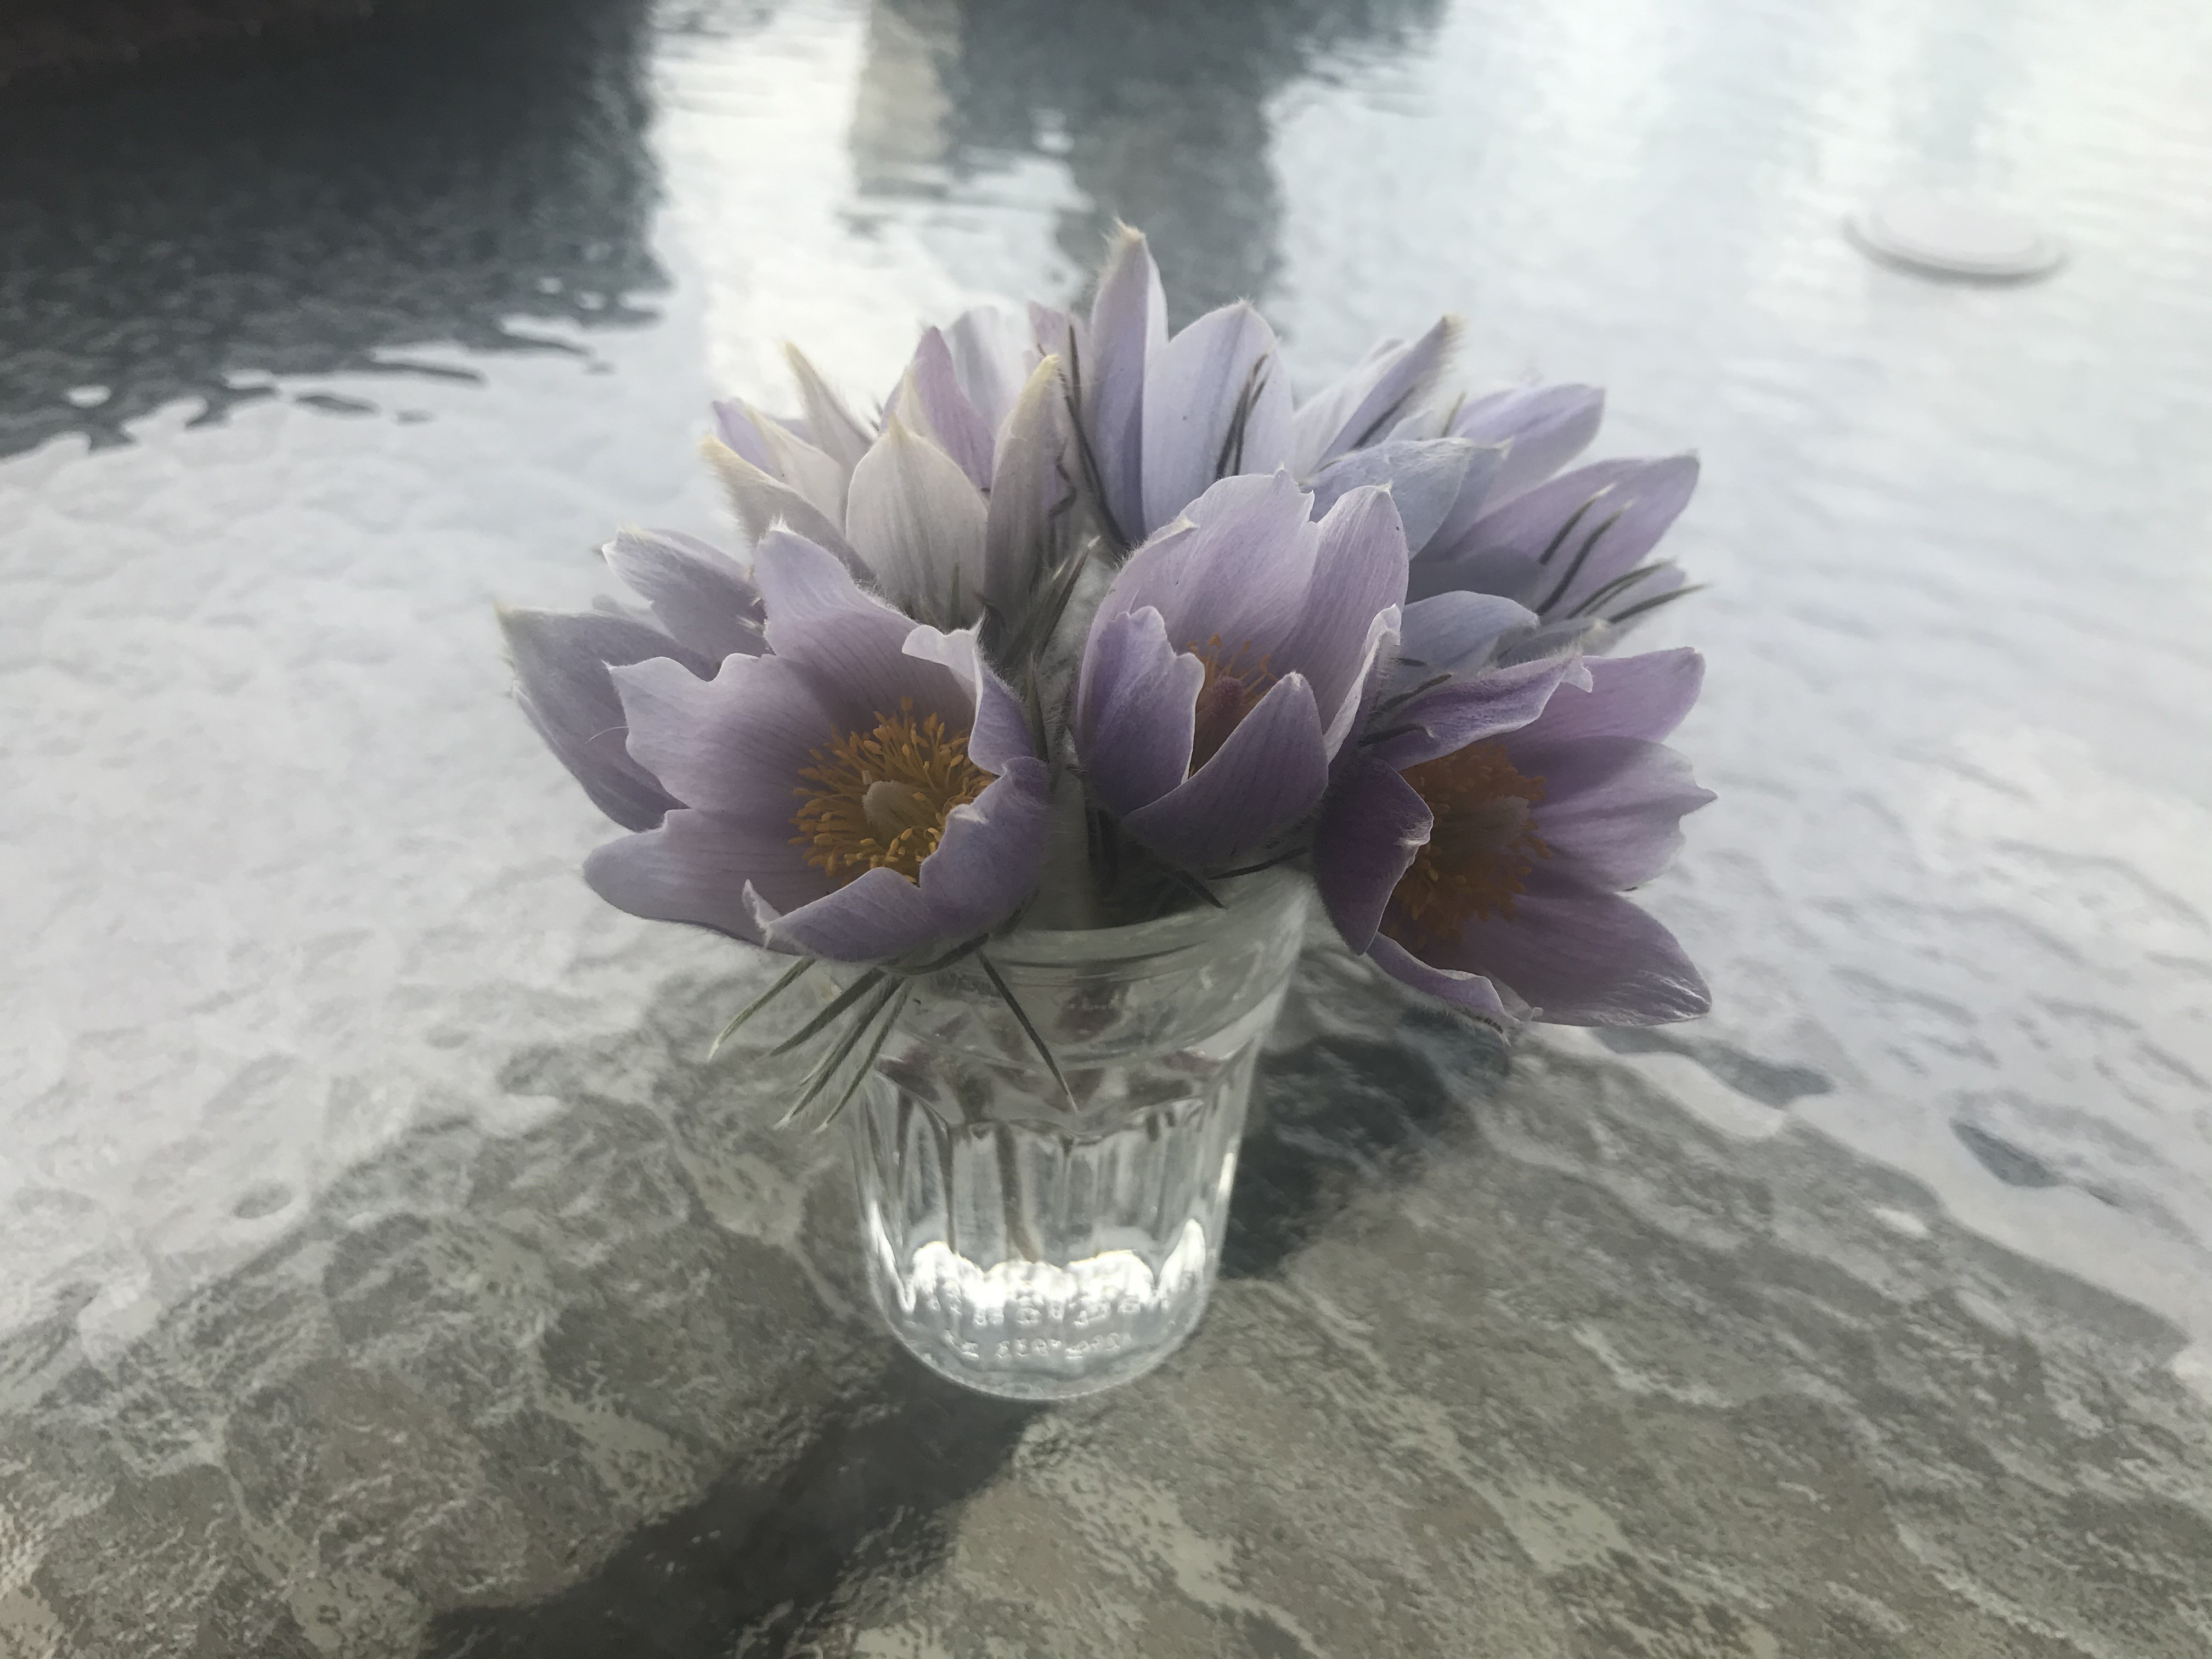 Crocus bouquet on the table